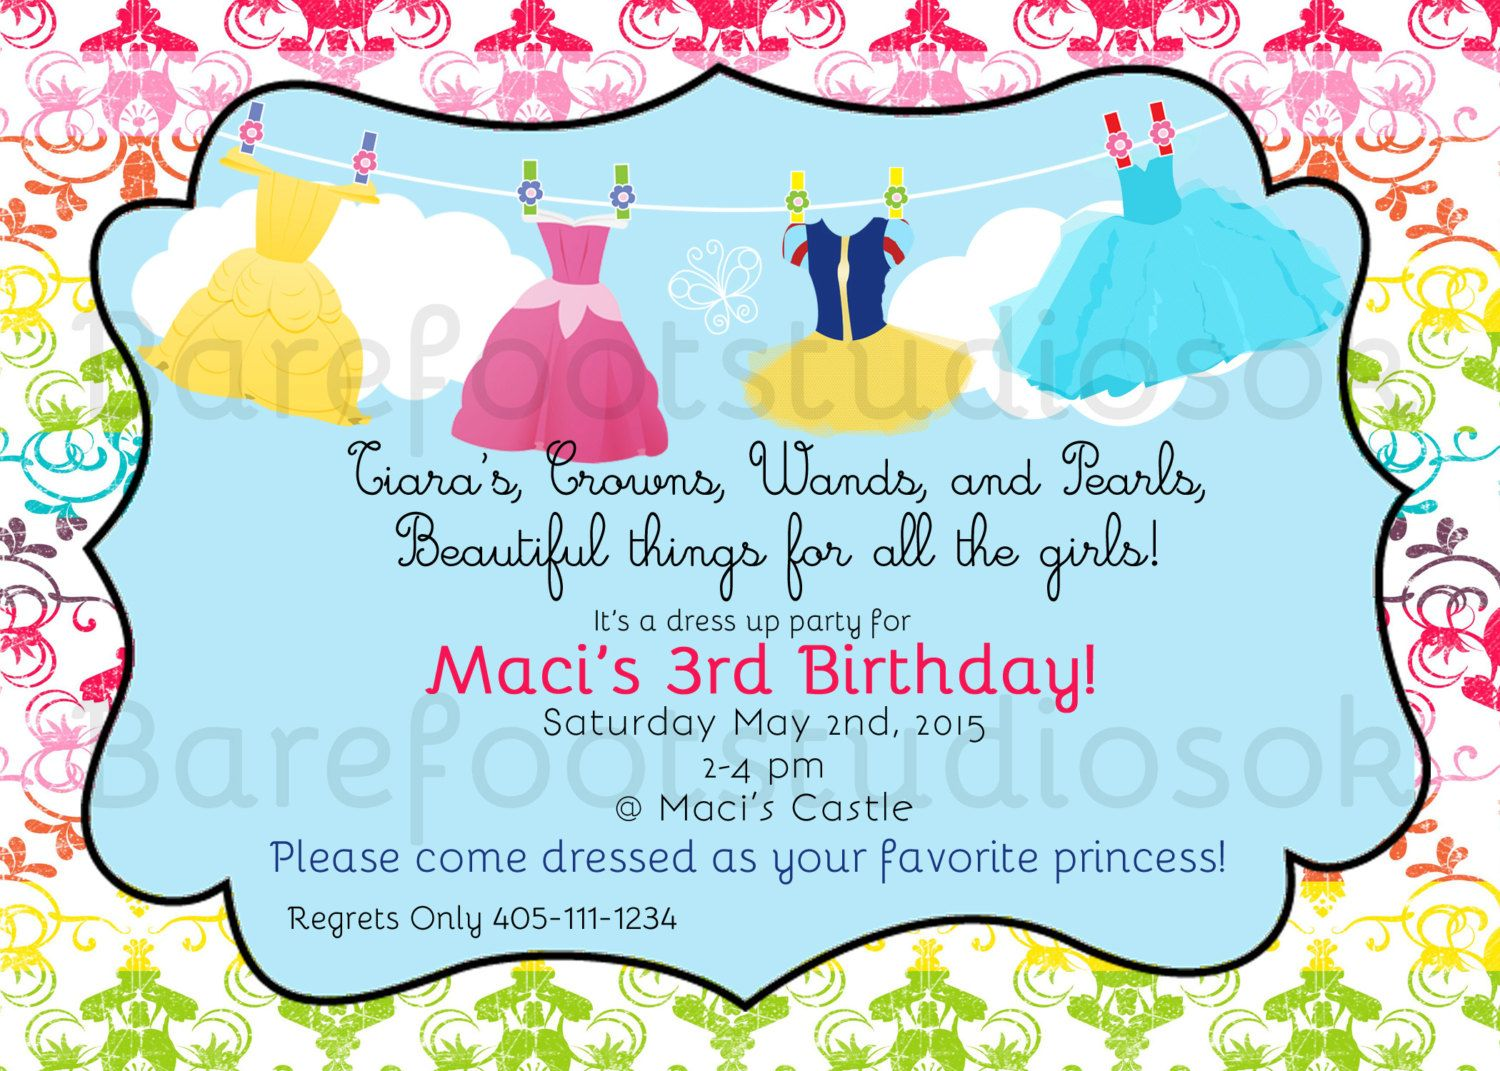 Princess Dress Up Birthday Party Printable/Digital Invitation 5x7 ...